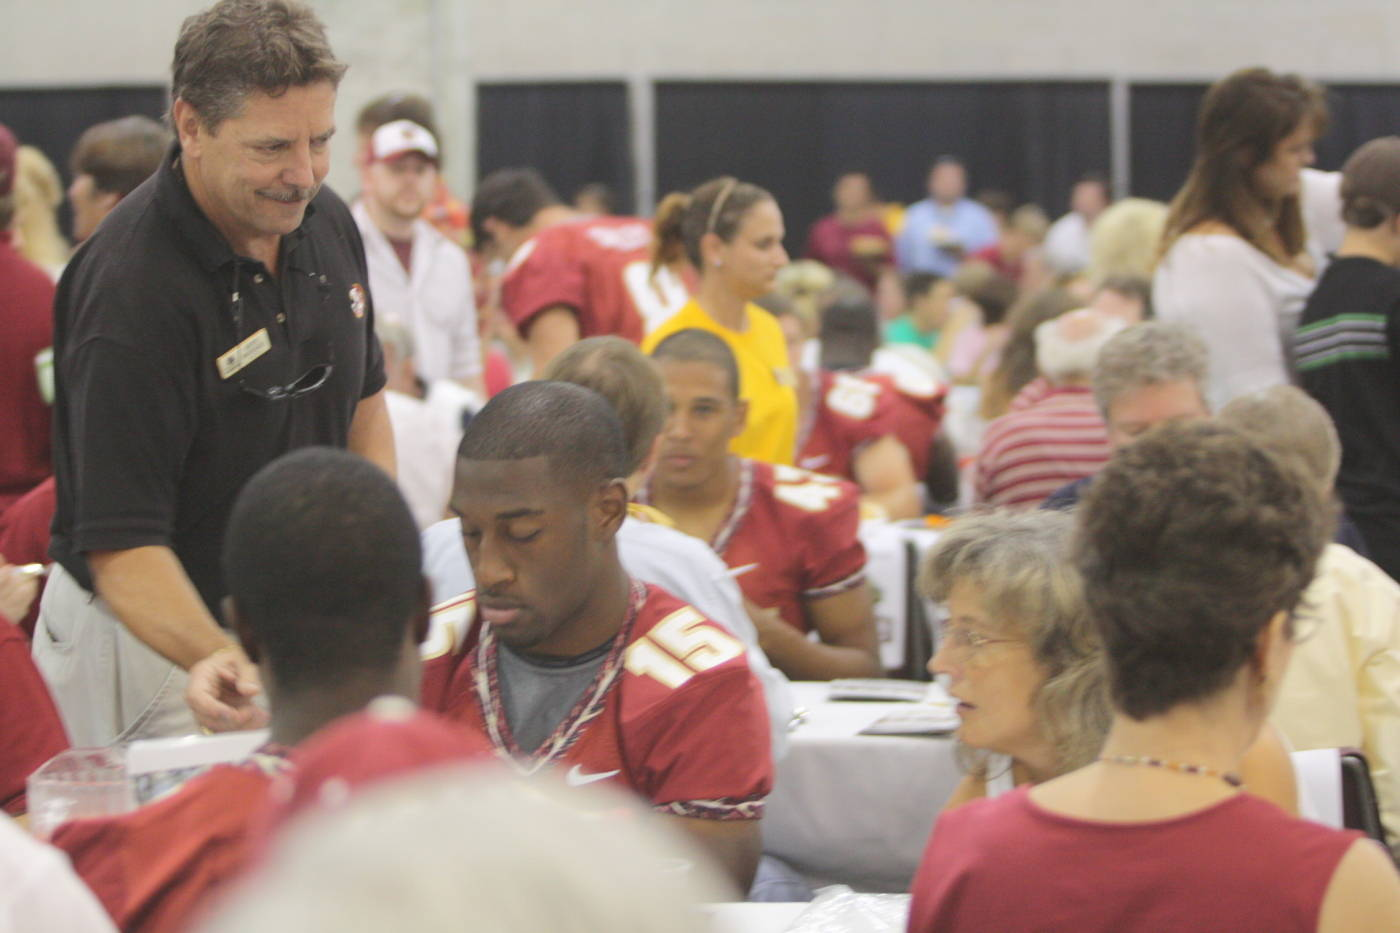 It was a packed house at the 2009 Football Luncheon.